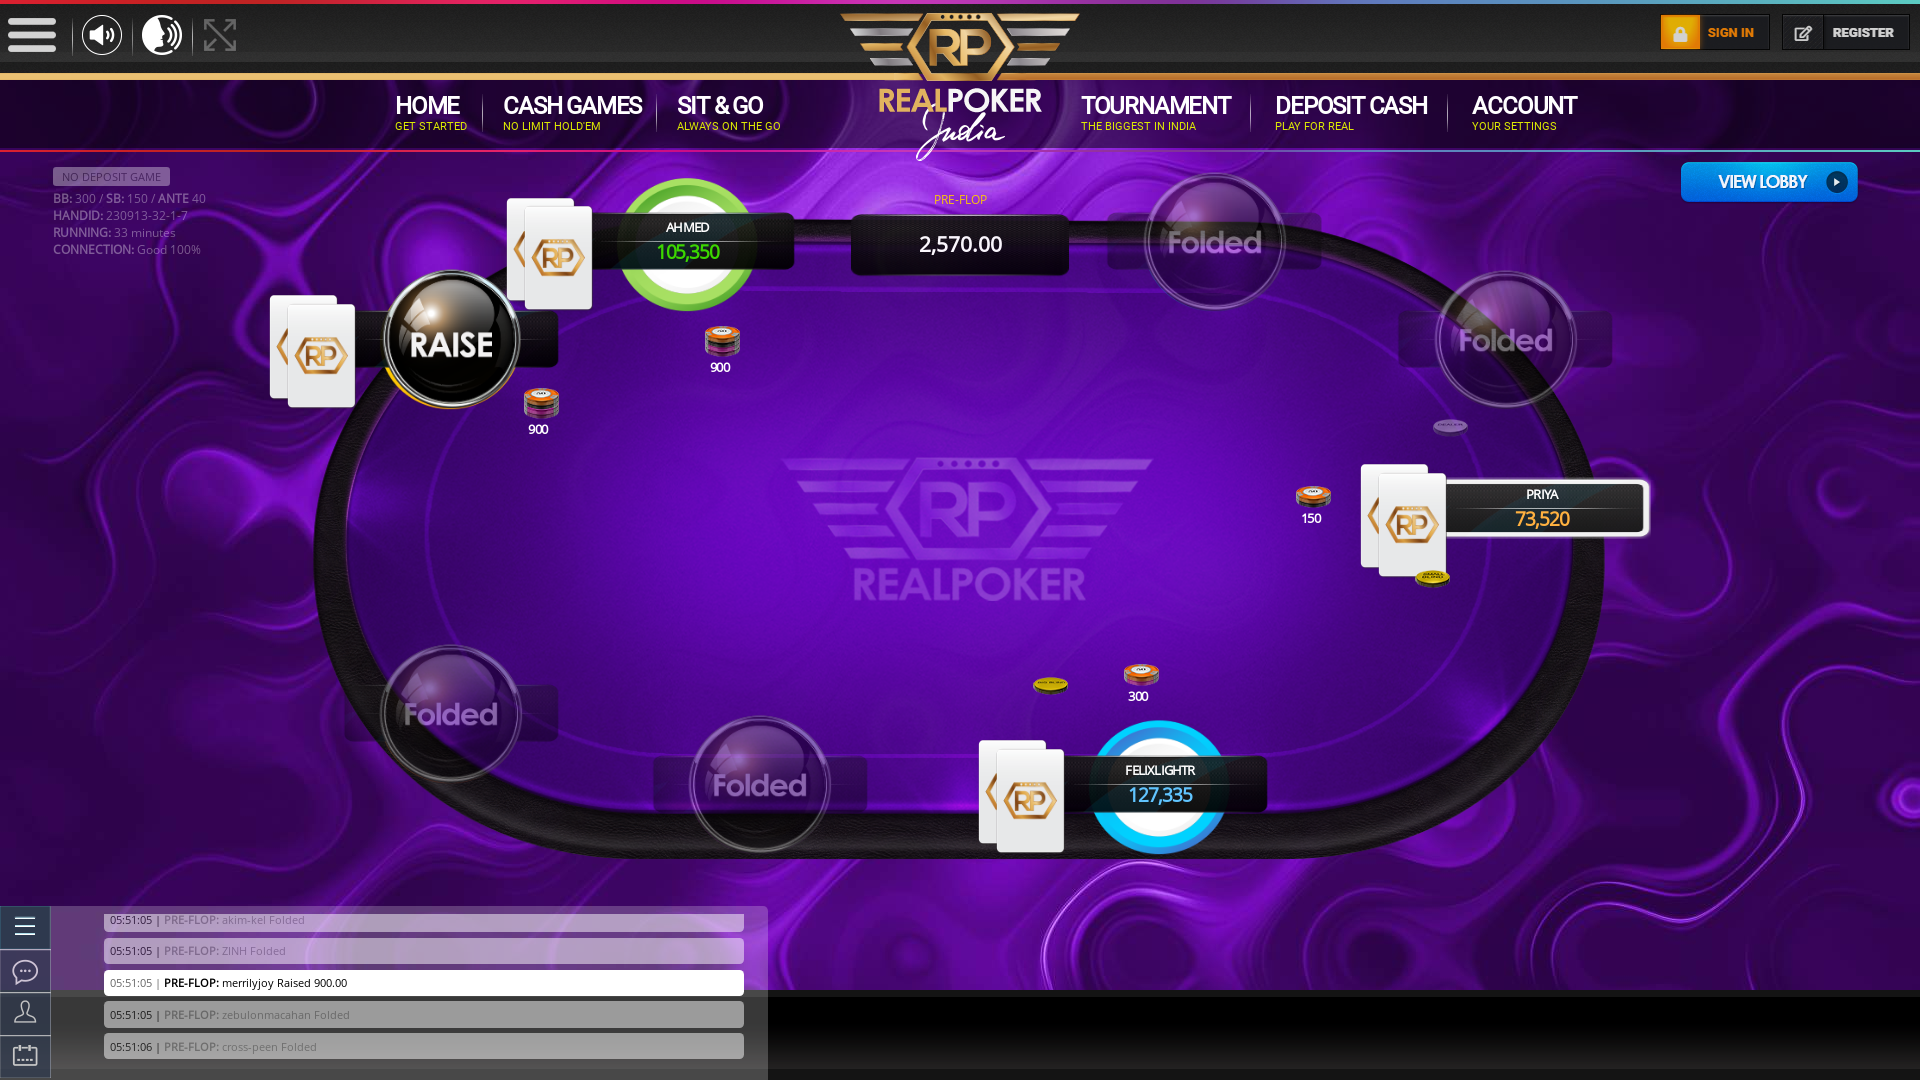 10 player texas holdem table at real poker with the table id 230913